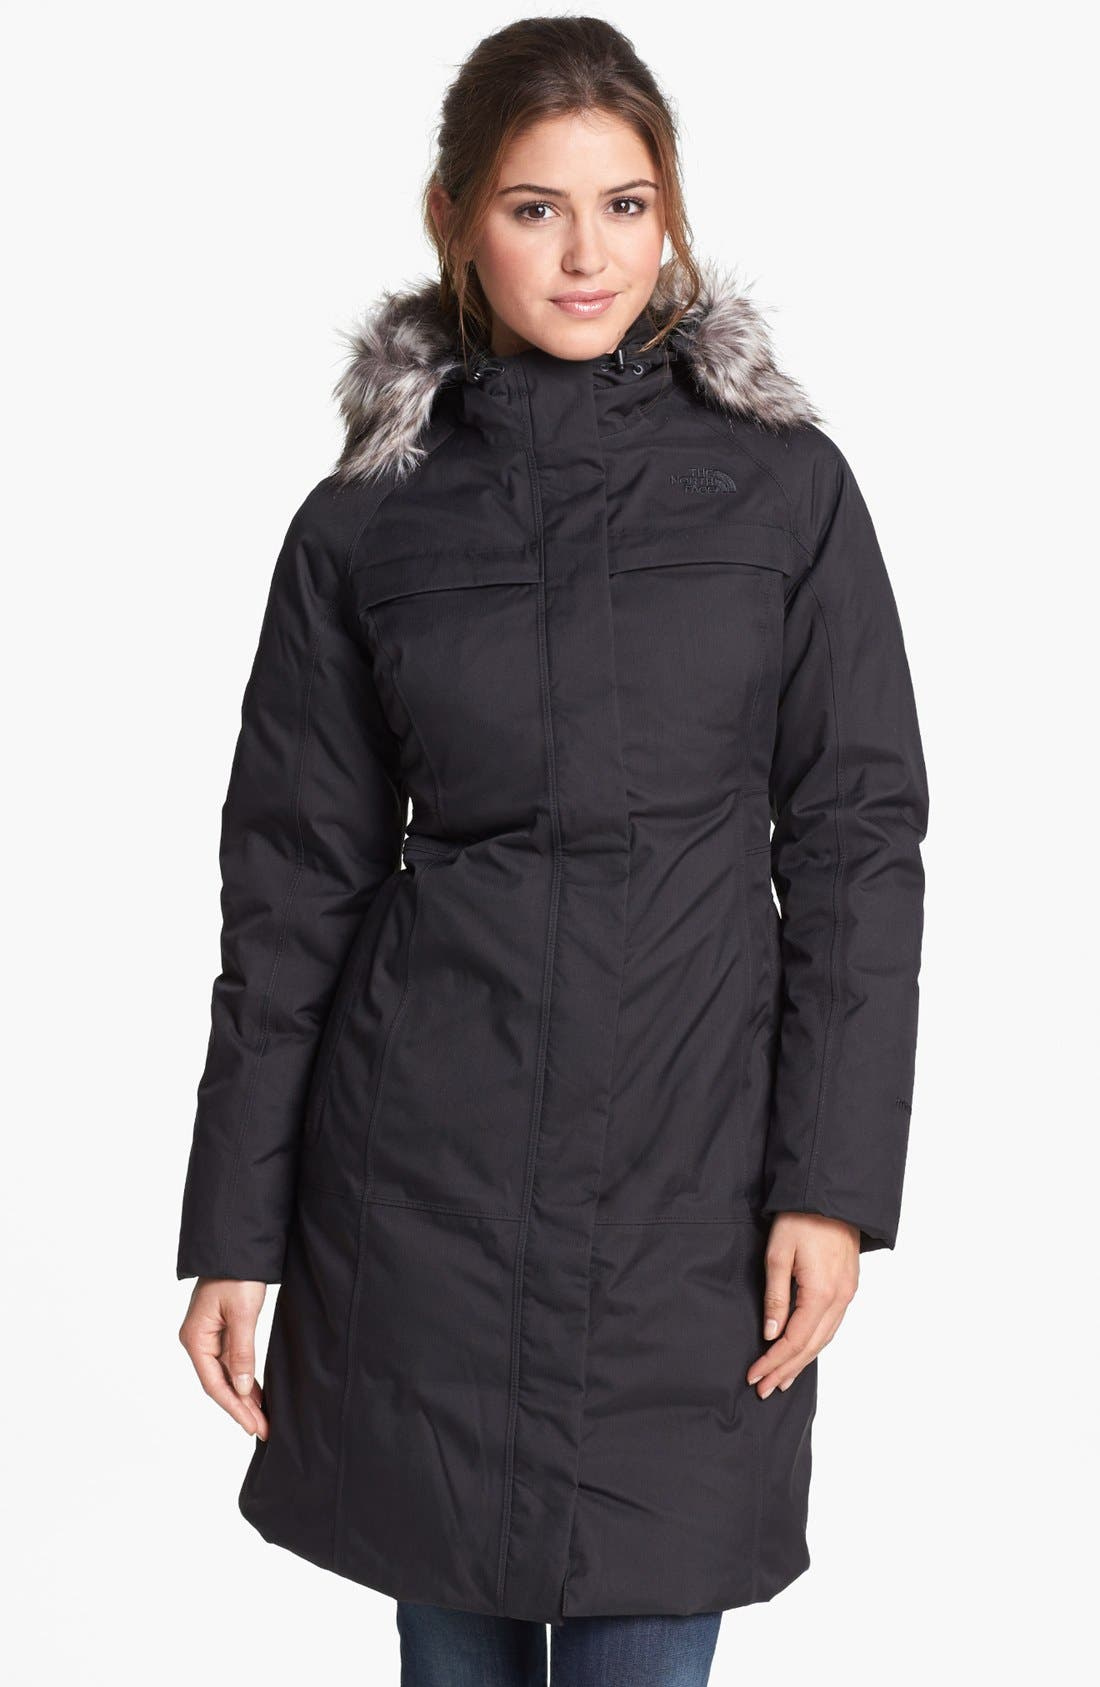 Main Image - The North Face 'Arctic' Down Parka